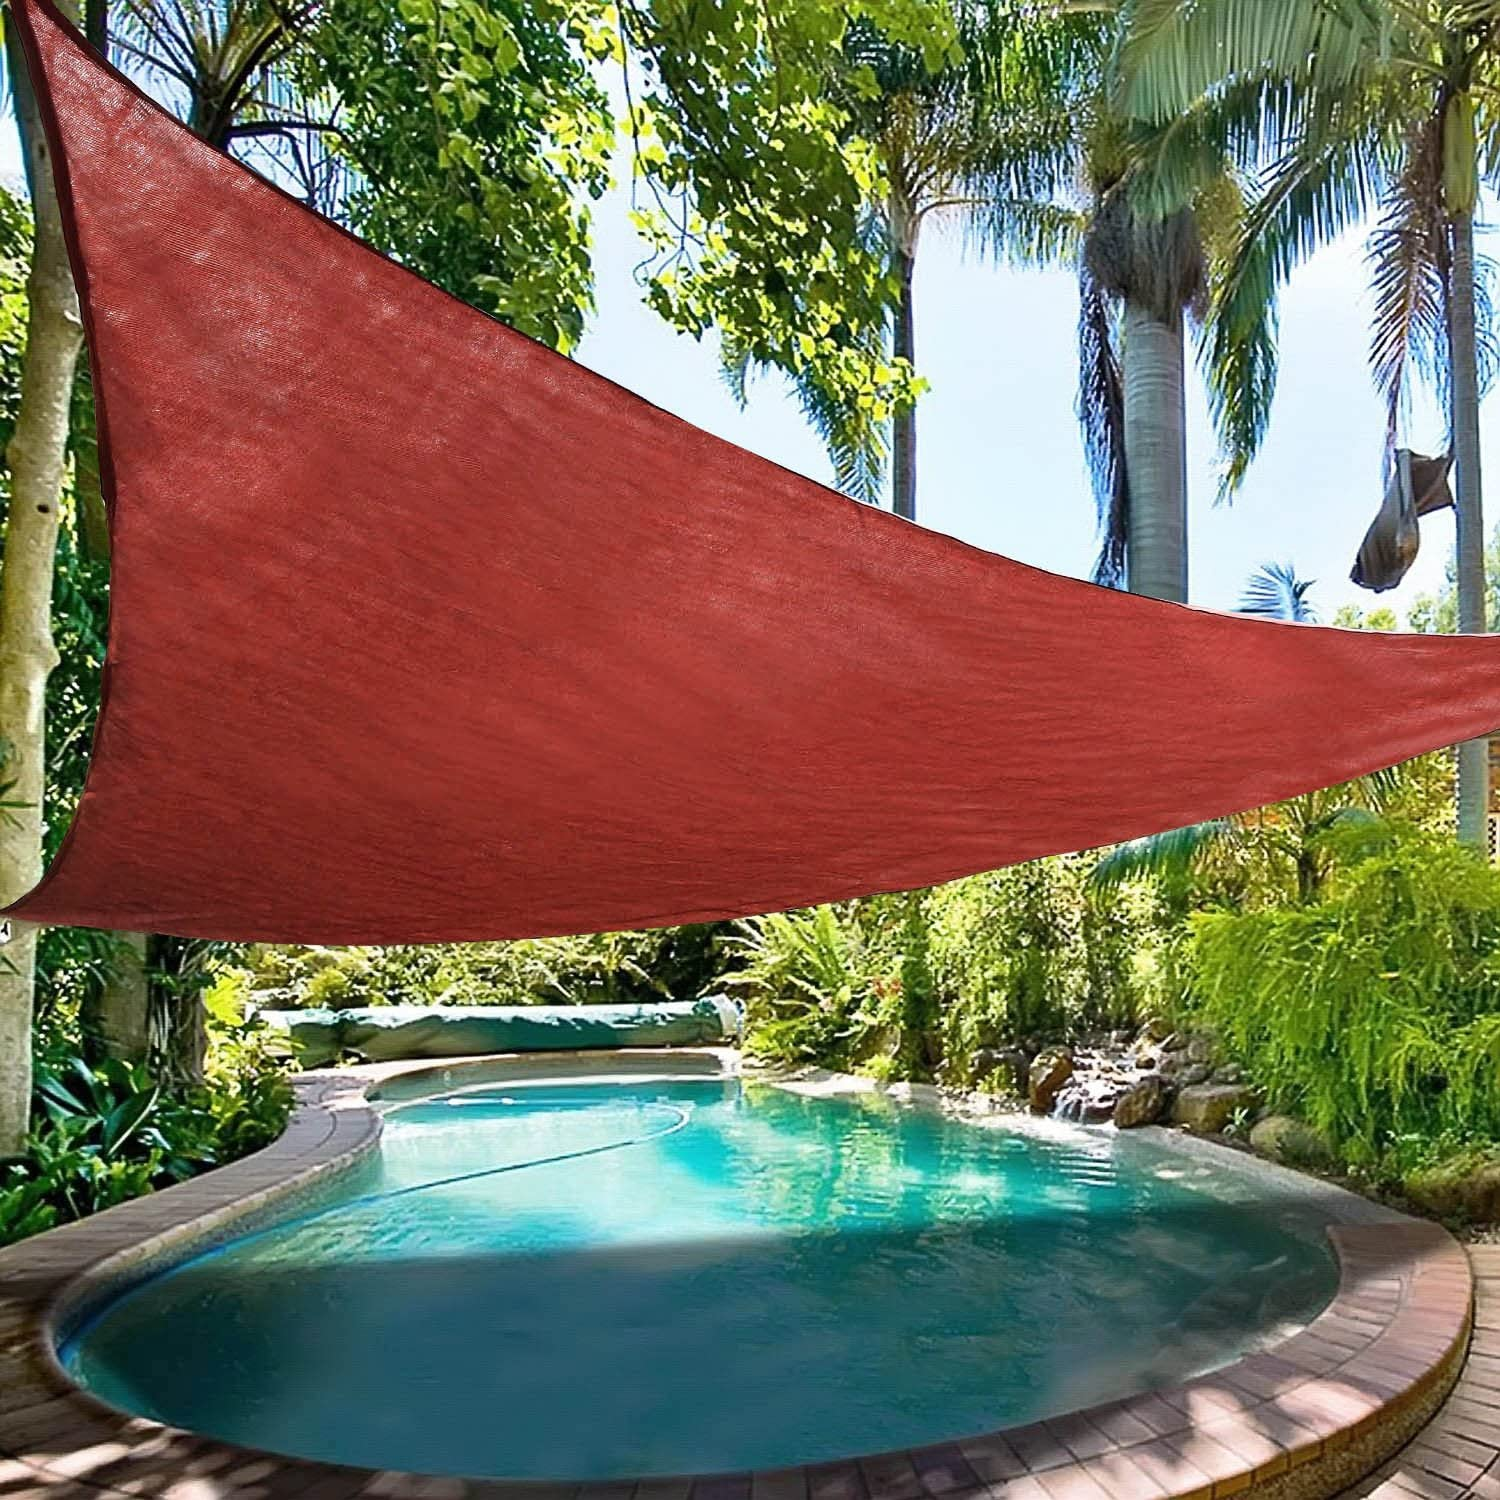 Ollieroo Shade Sail UV Block Fabric Patio Outdoor Canopy Sun Shelter with 5ft PE Ropes and Steel D-Rings 16.5x16.5x16.5ft Triangle Red